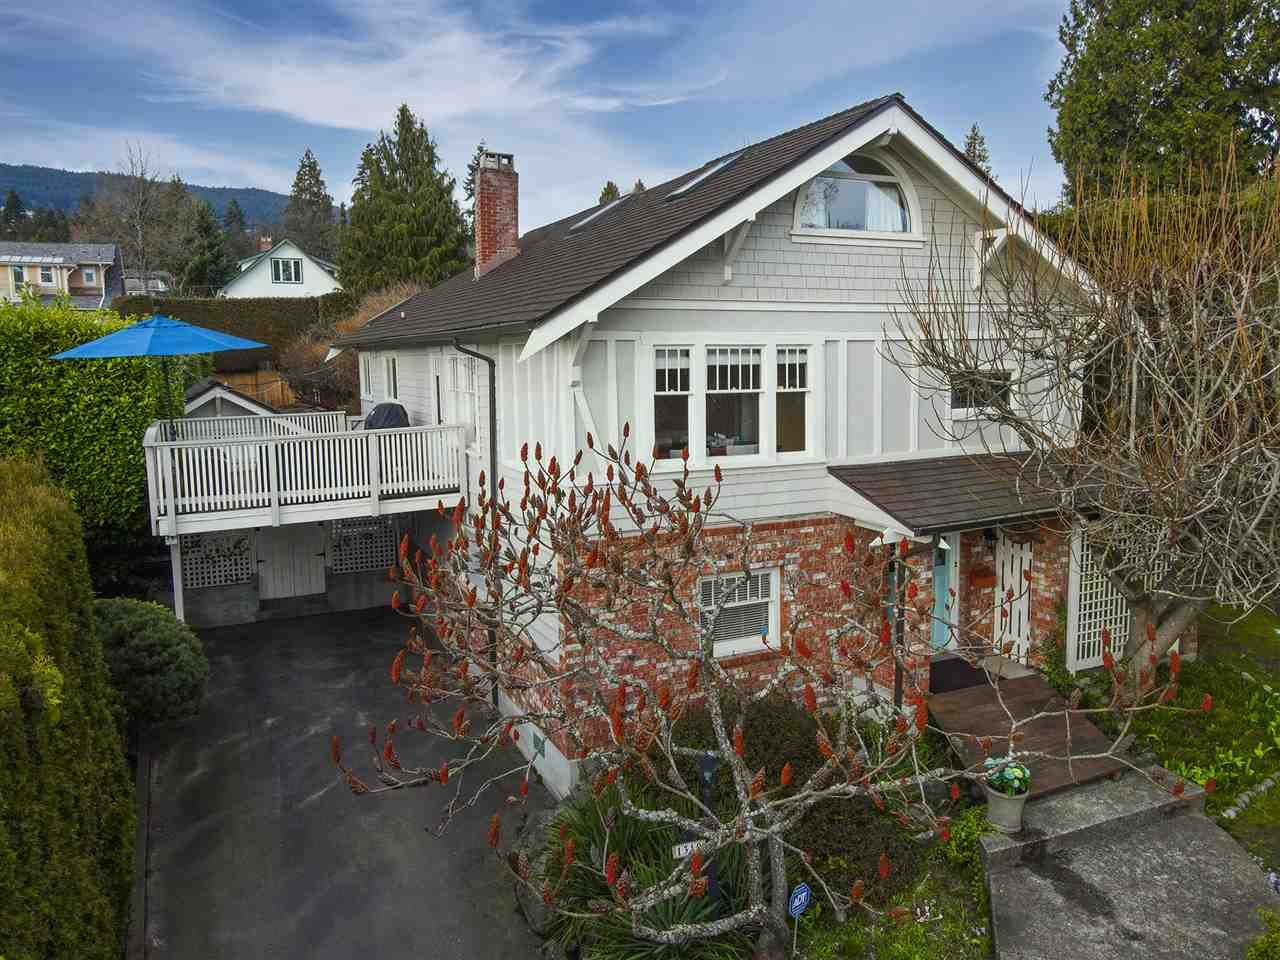 """Main Photo: 1319 FULTON Avenue in West Vancouver: Ambleside House for sale in """"Ambleside Village"""" : MLS®# R2575557"""